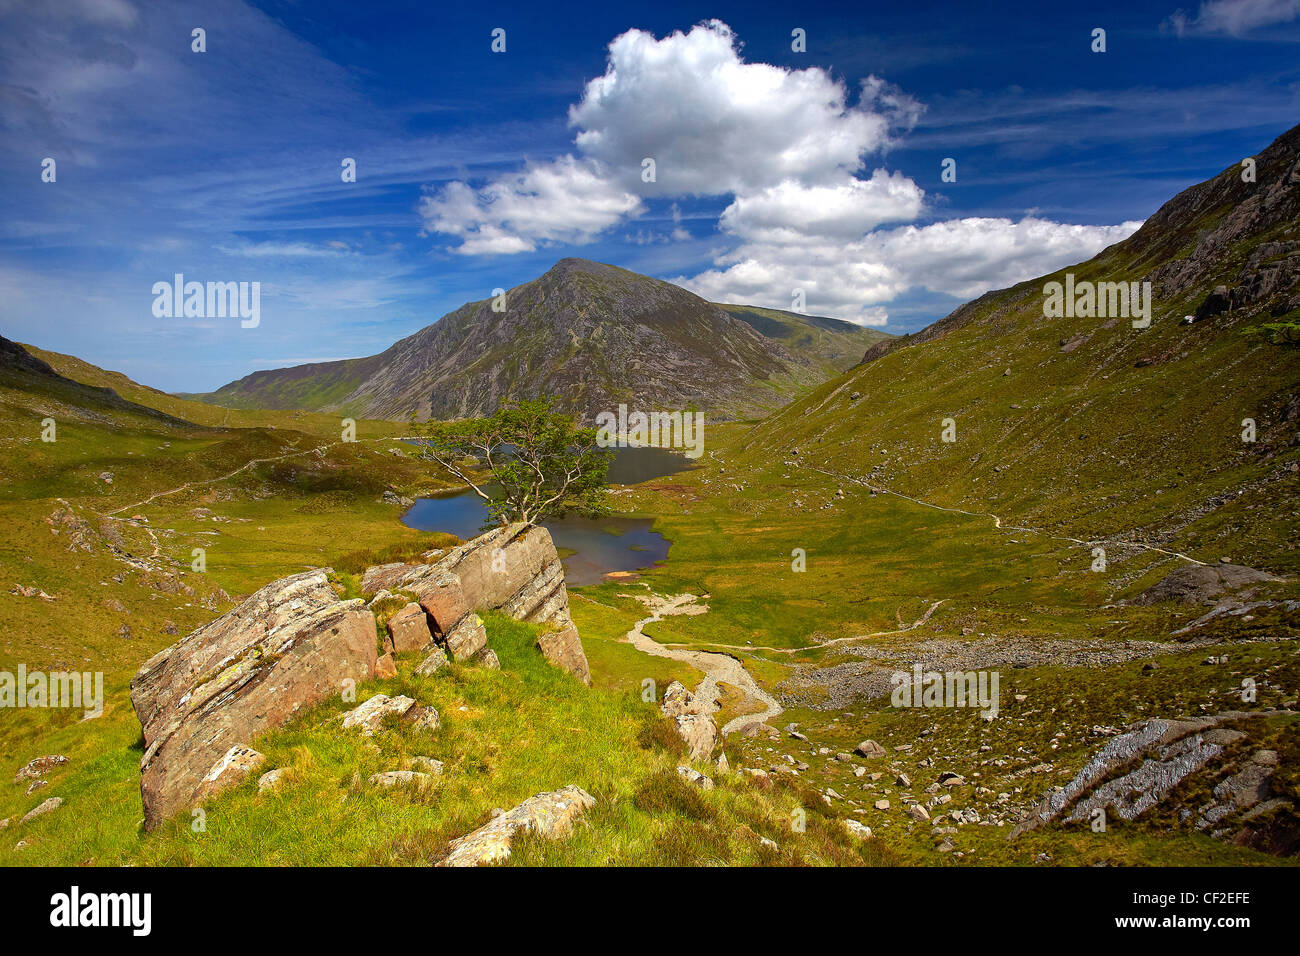 View of Pen Yr Ole Wen, the seventh highest mountain in Snowdonia and in Wales, from a path above Llyn Idwal in - Stock Image